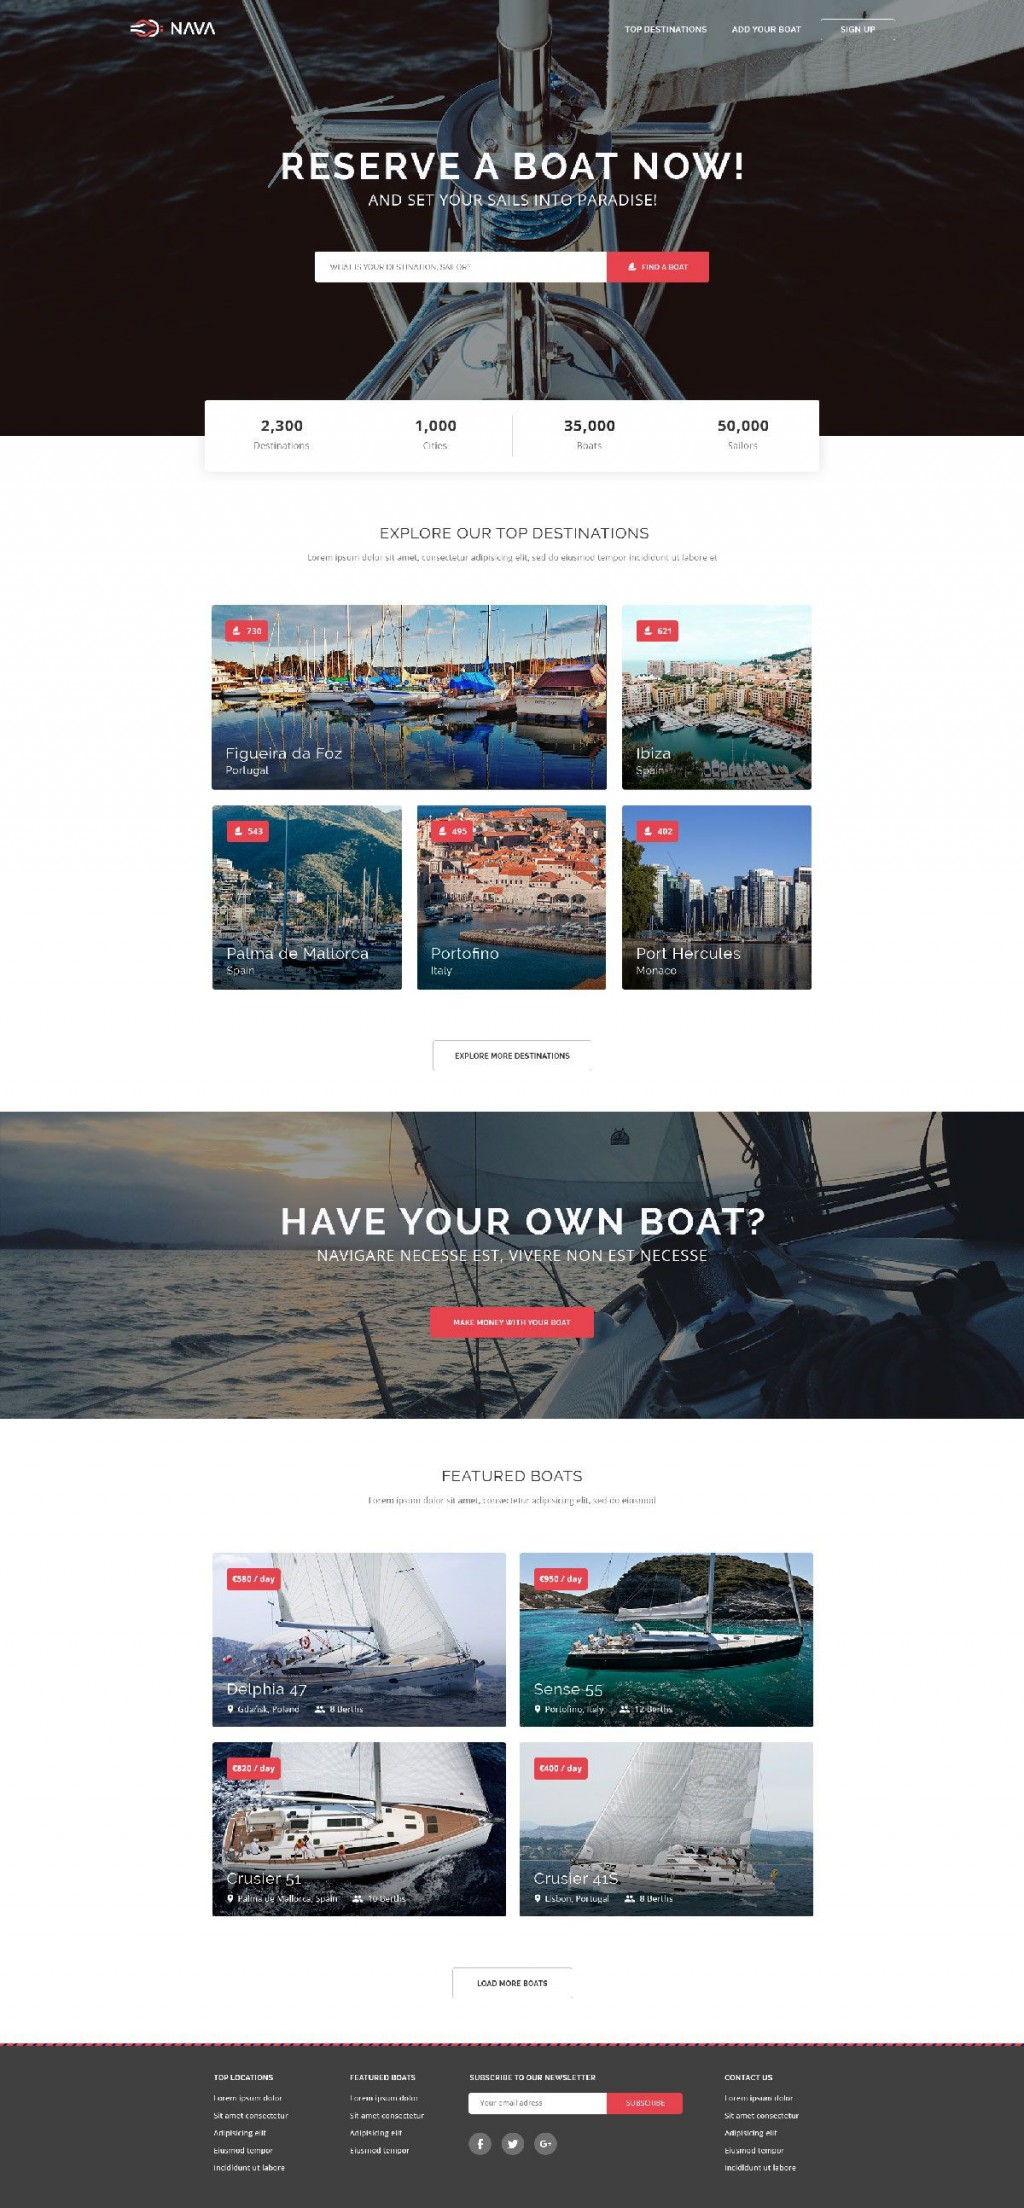 006 Remarkable One Page Website Template Psd Free Download Idea Large